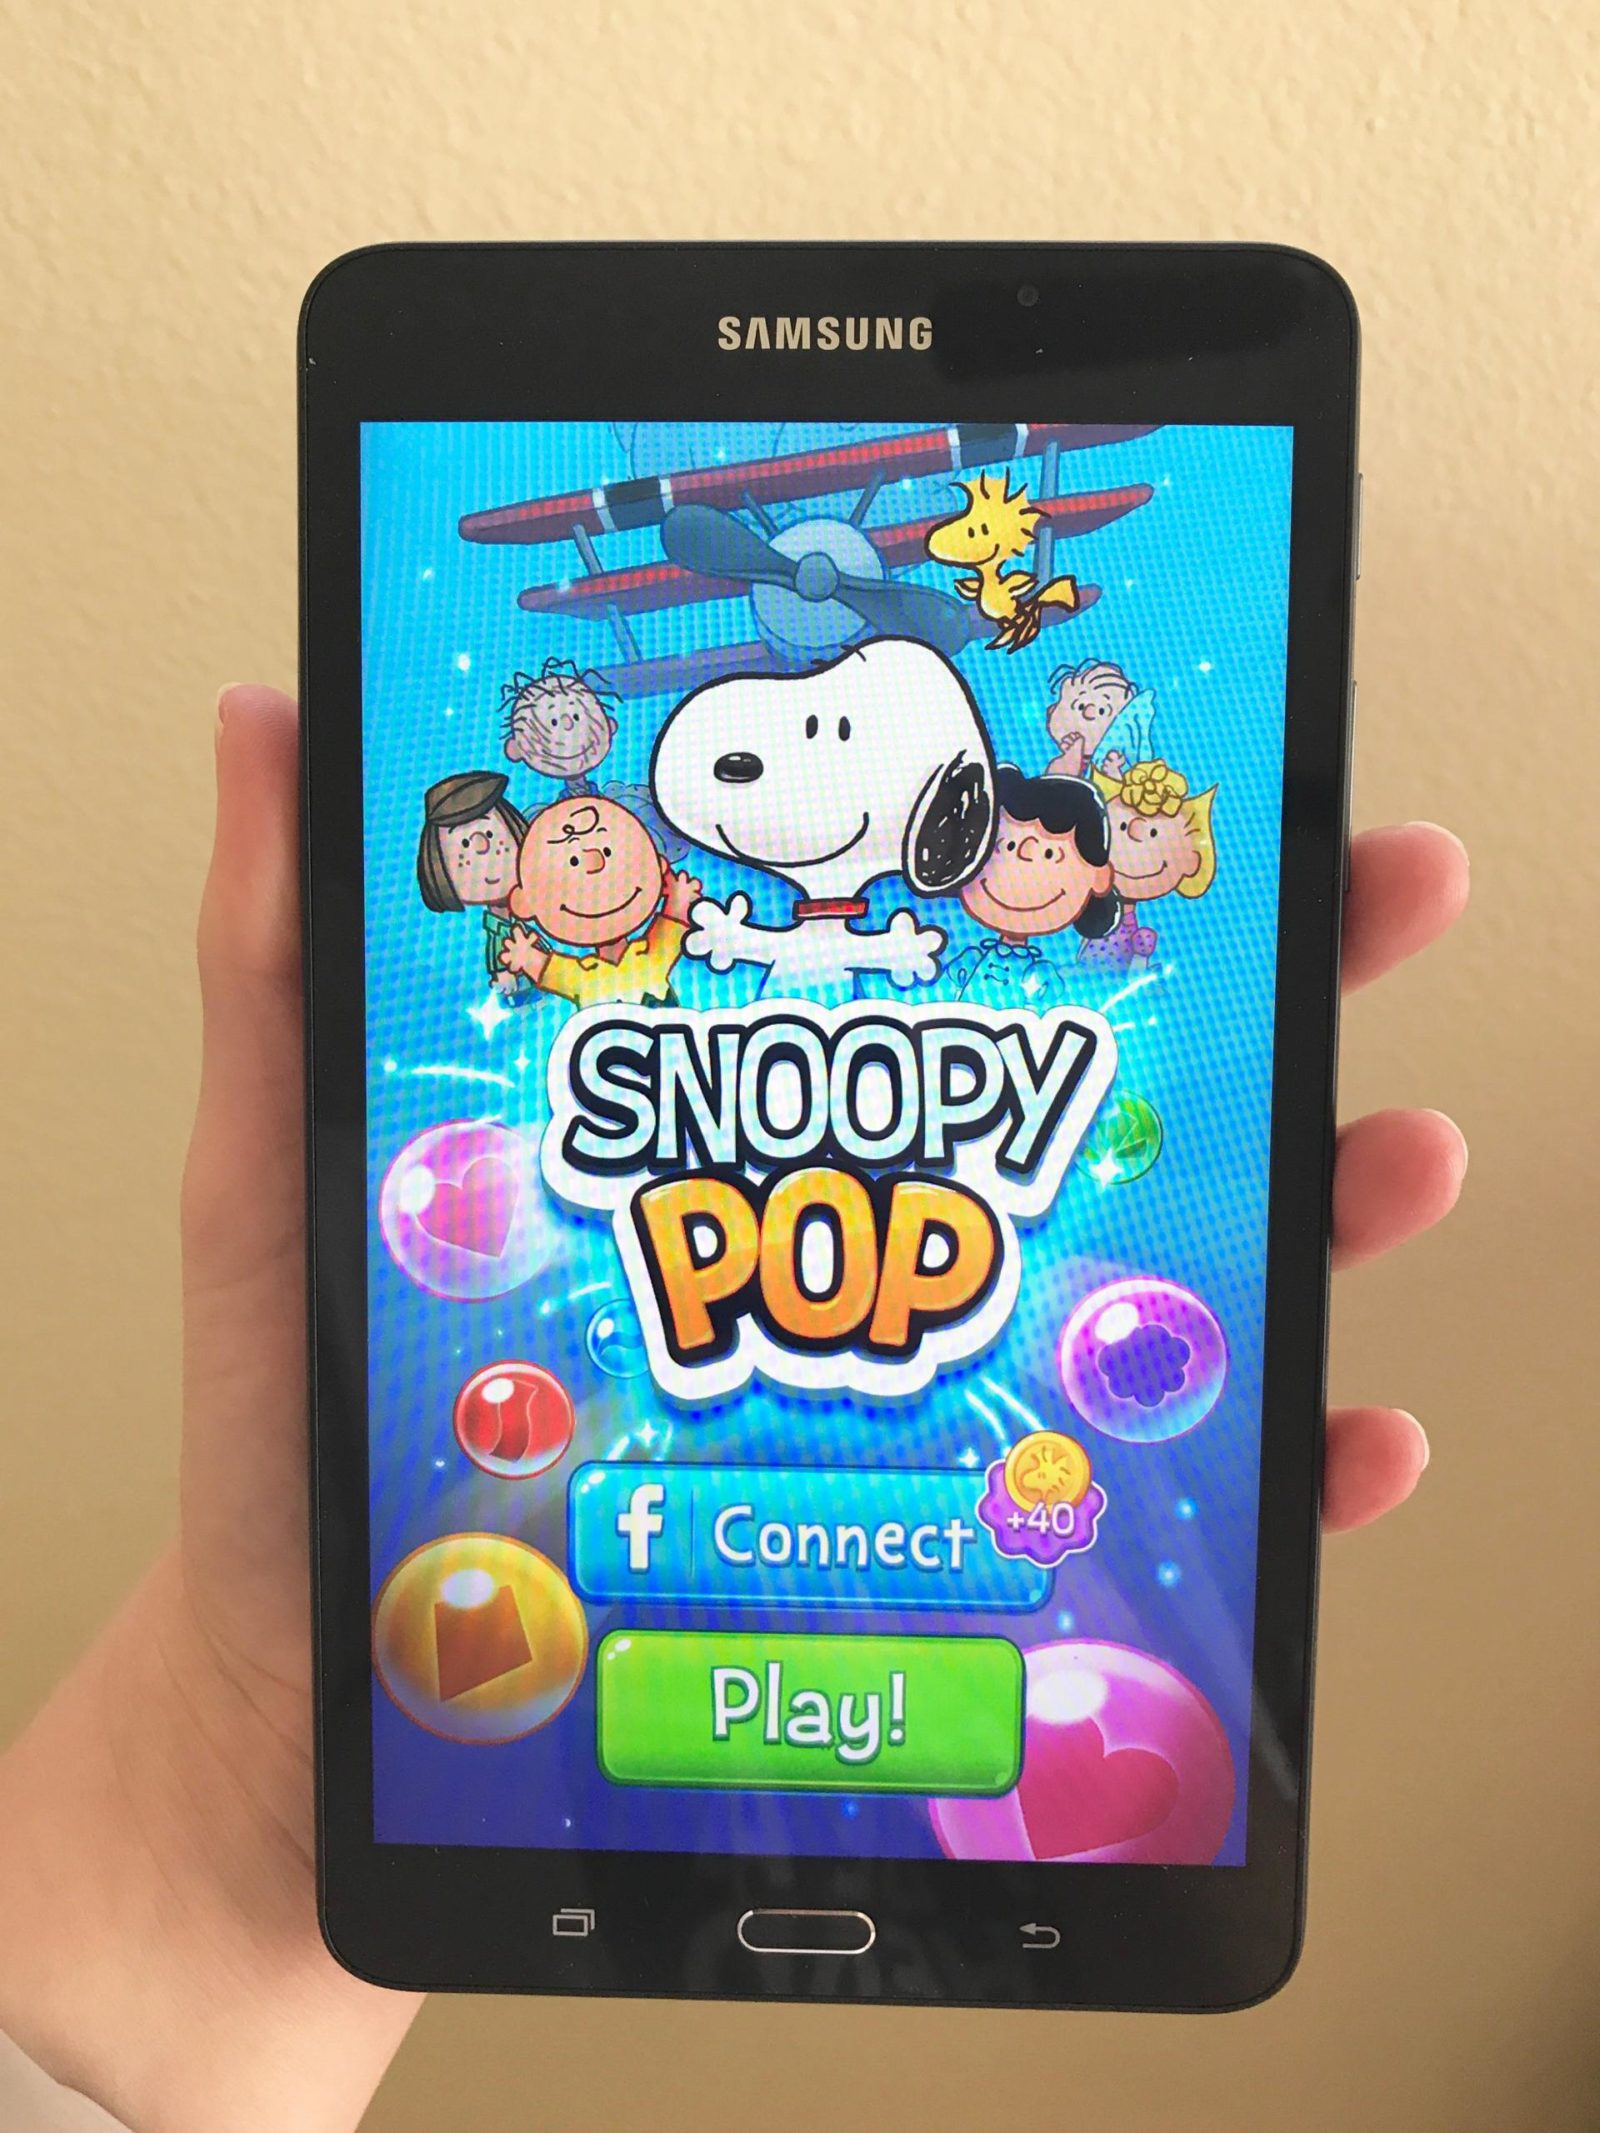 Snoopy Pop App (+ Win a Samsung Galaxy Tablet)!